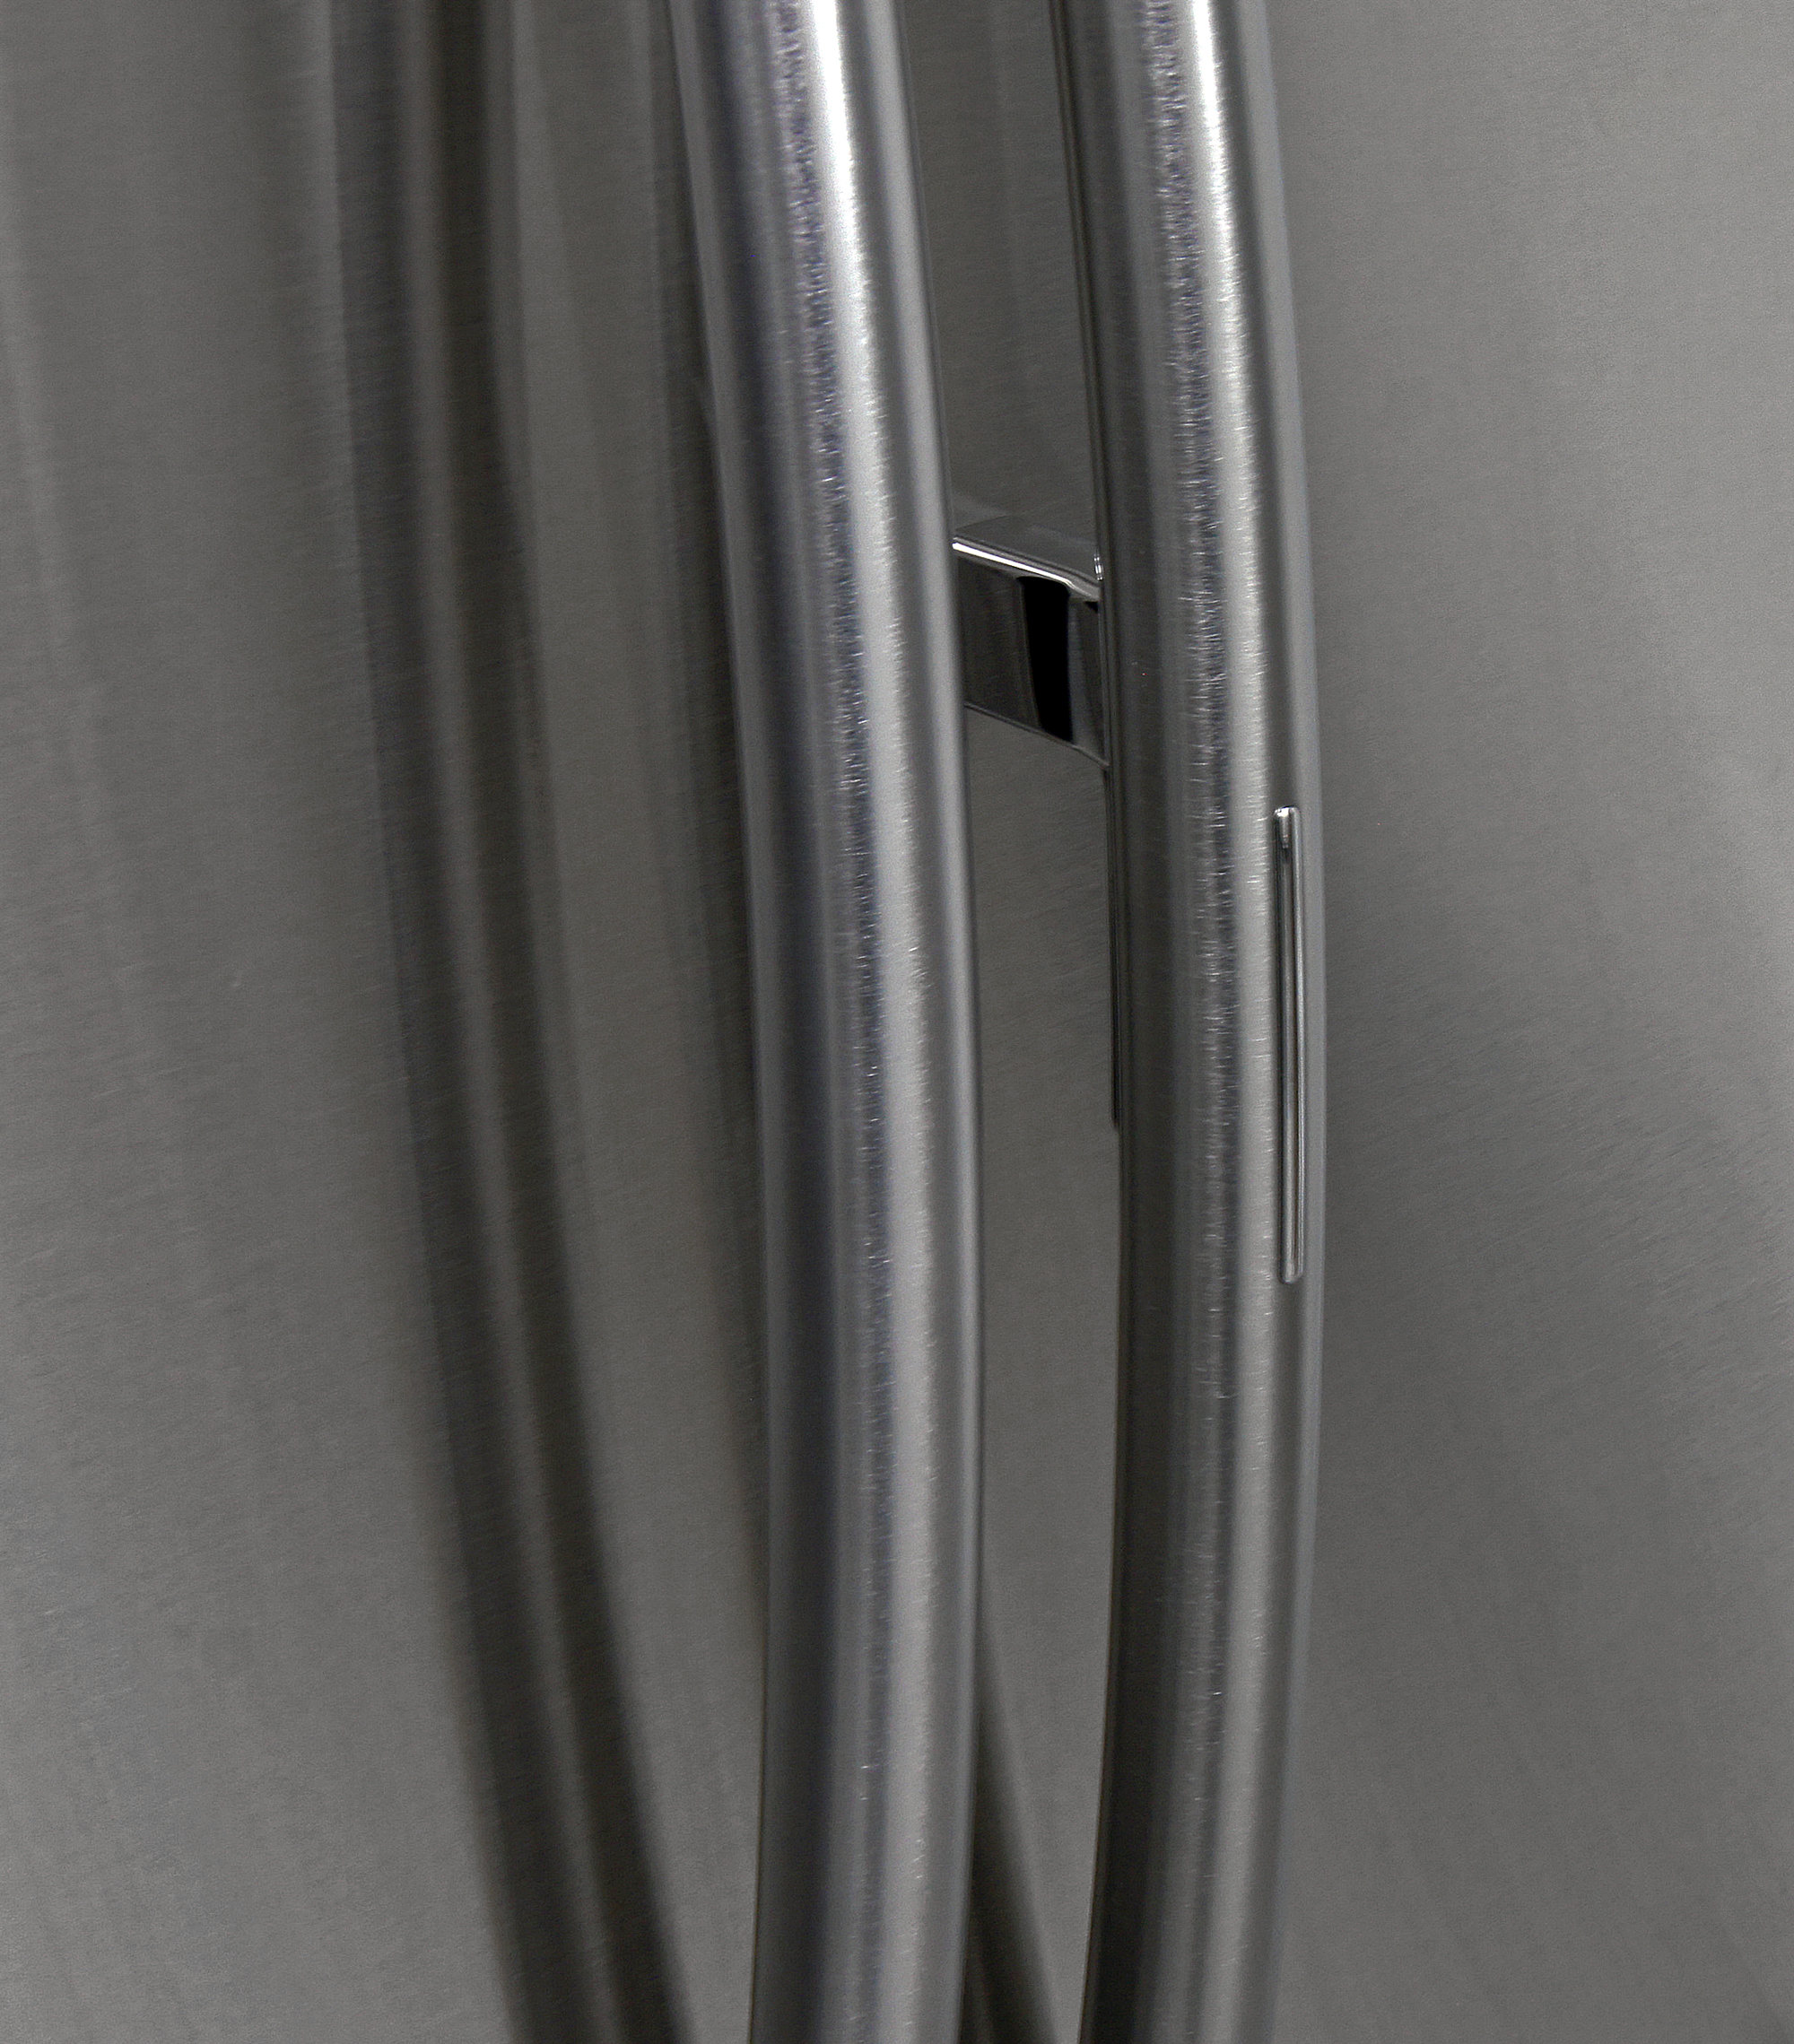 The Samsung RF23HTEDBSR's door-in-door compartment is accessed by holding down this trigger on the regular door handle.